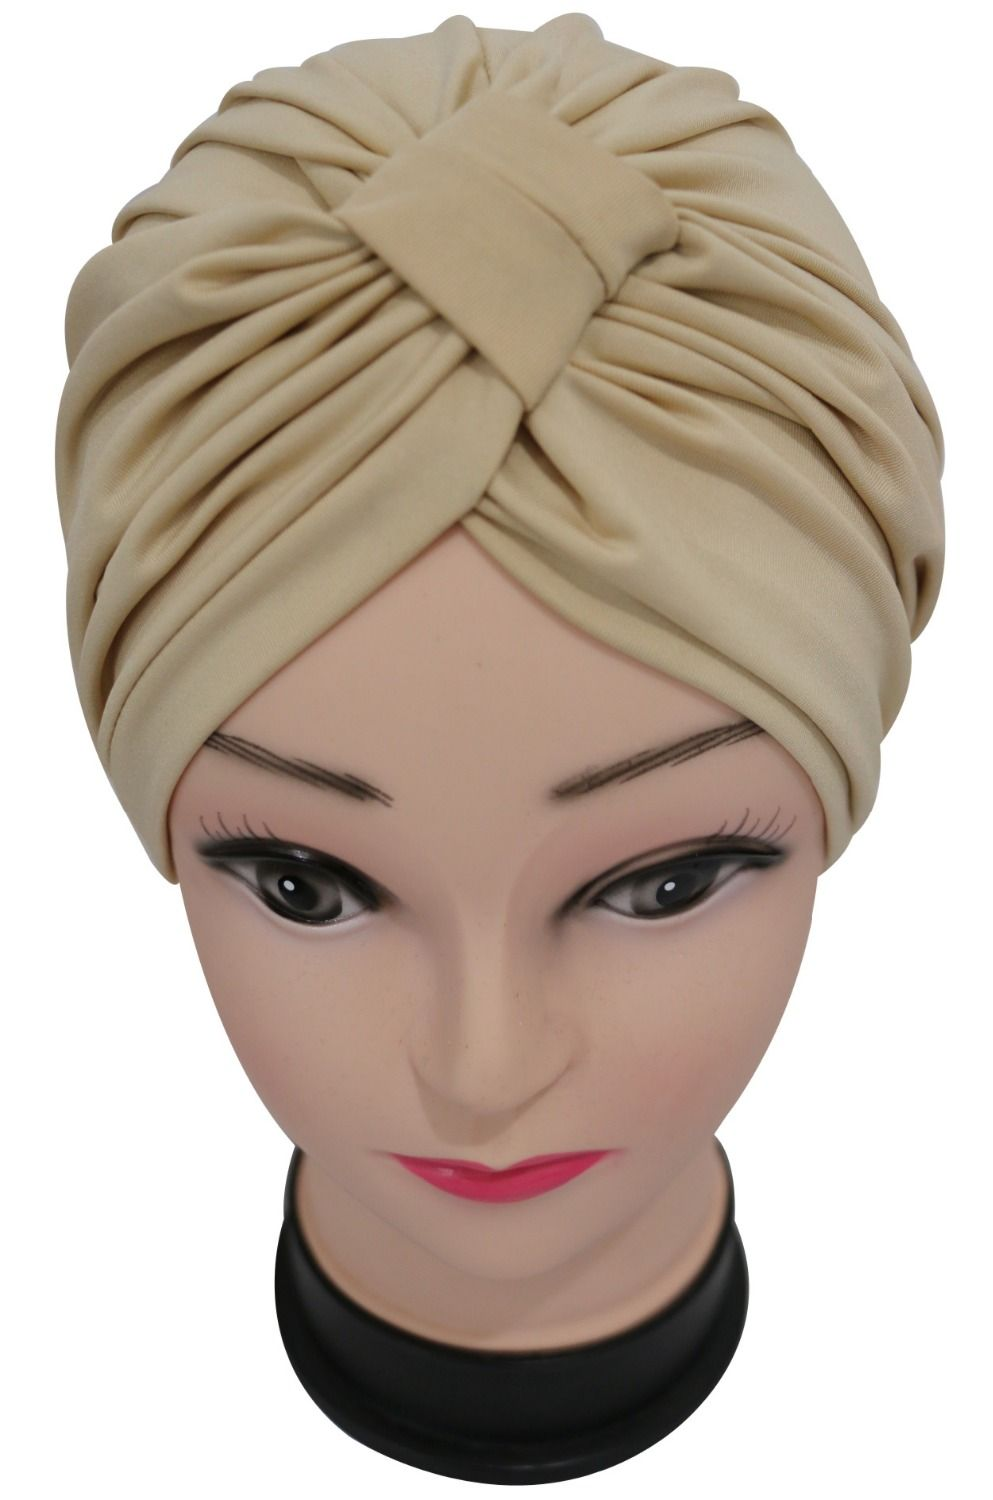 Free Shipping 2017 New Fashion Black Burgundy  Navy Solid Color Soft Modal Indian Turban Hats Cap For Women